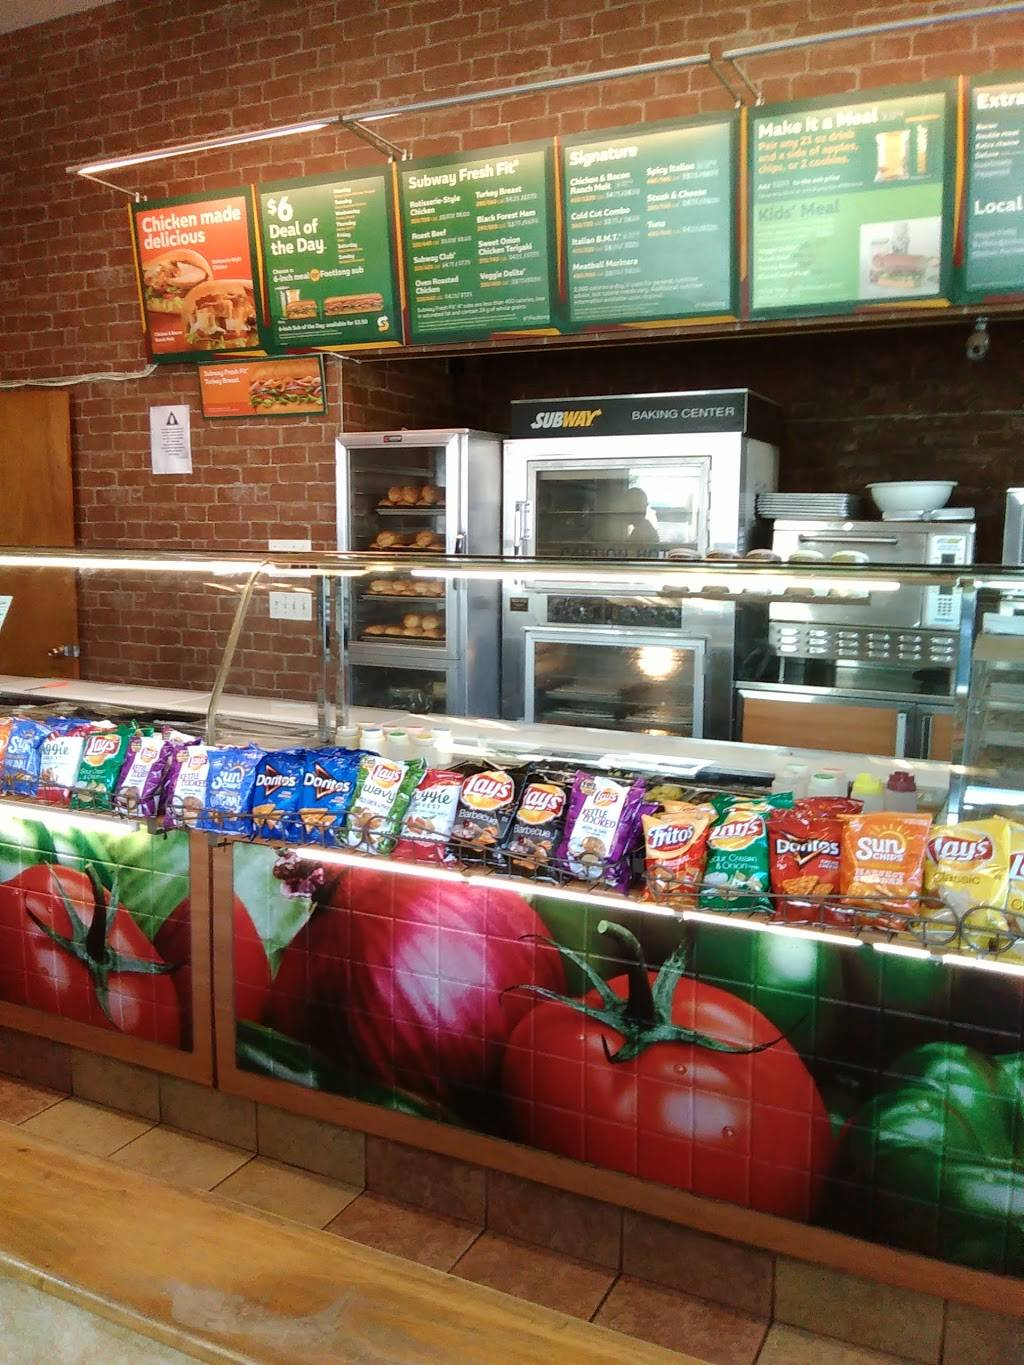 Subway Restaurants | restaurant | 400 Myrtle Ave, Brooklyn, NY 11205, USA | 7187974394 OR +1 718-797-4394